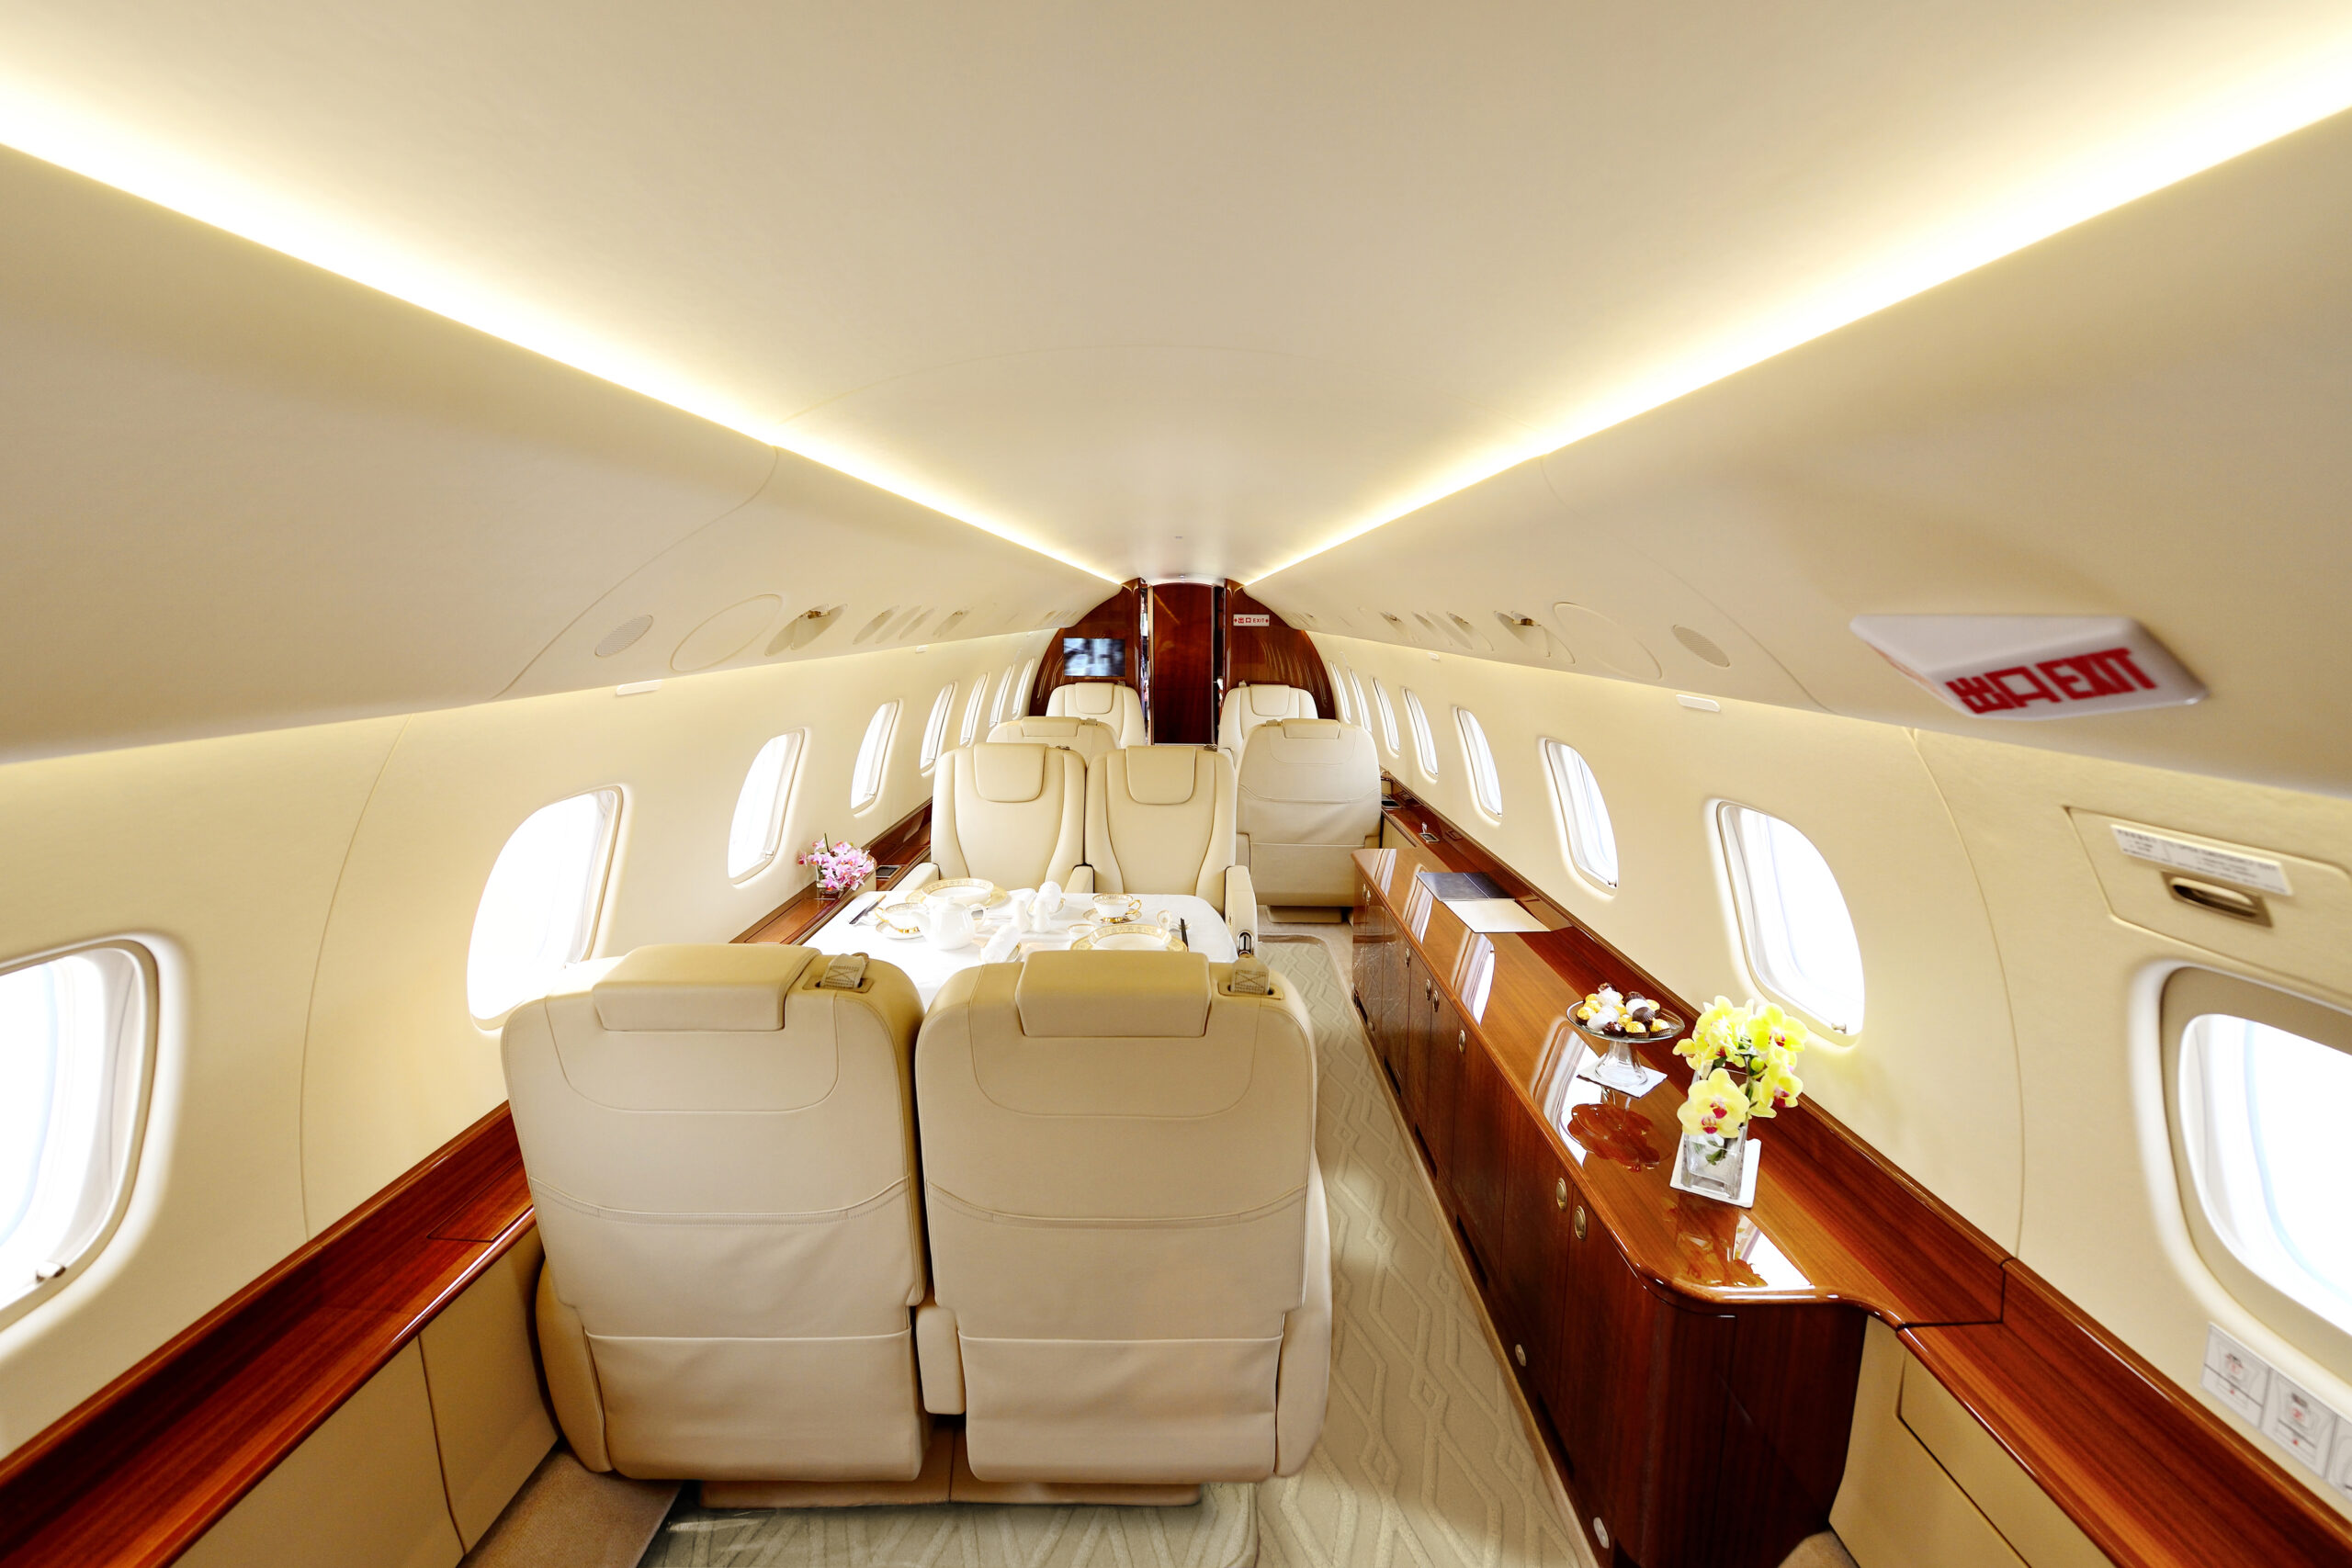 Luxury Carpet Studio realizes bespoke luxury carpets for private jets